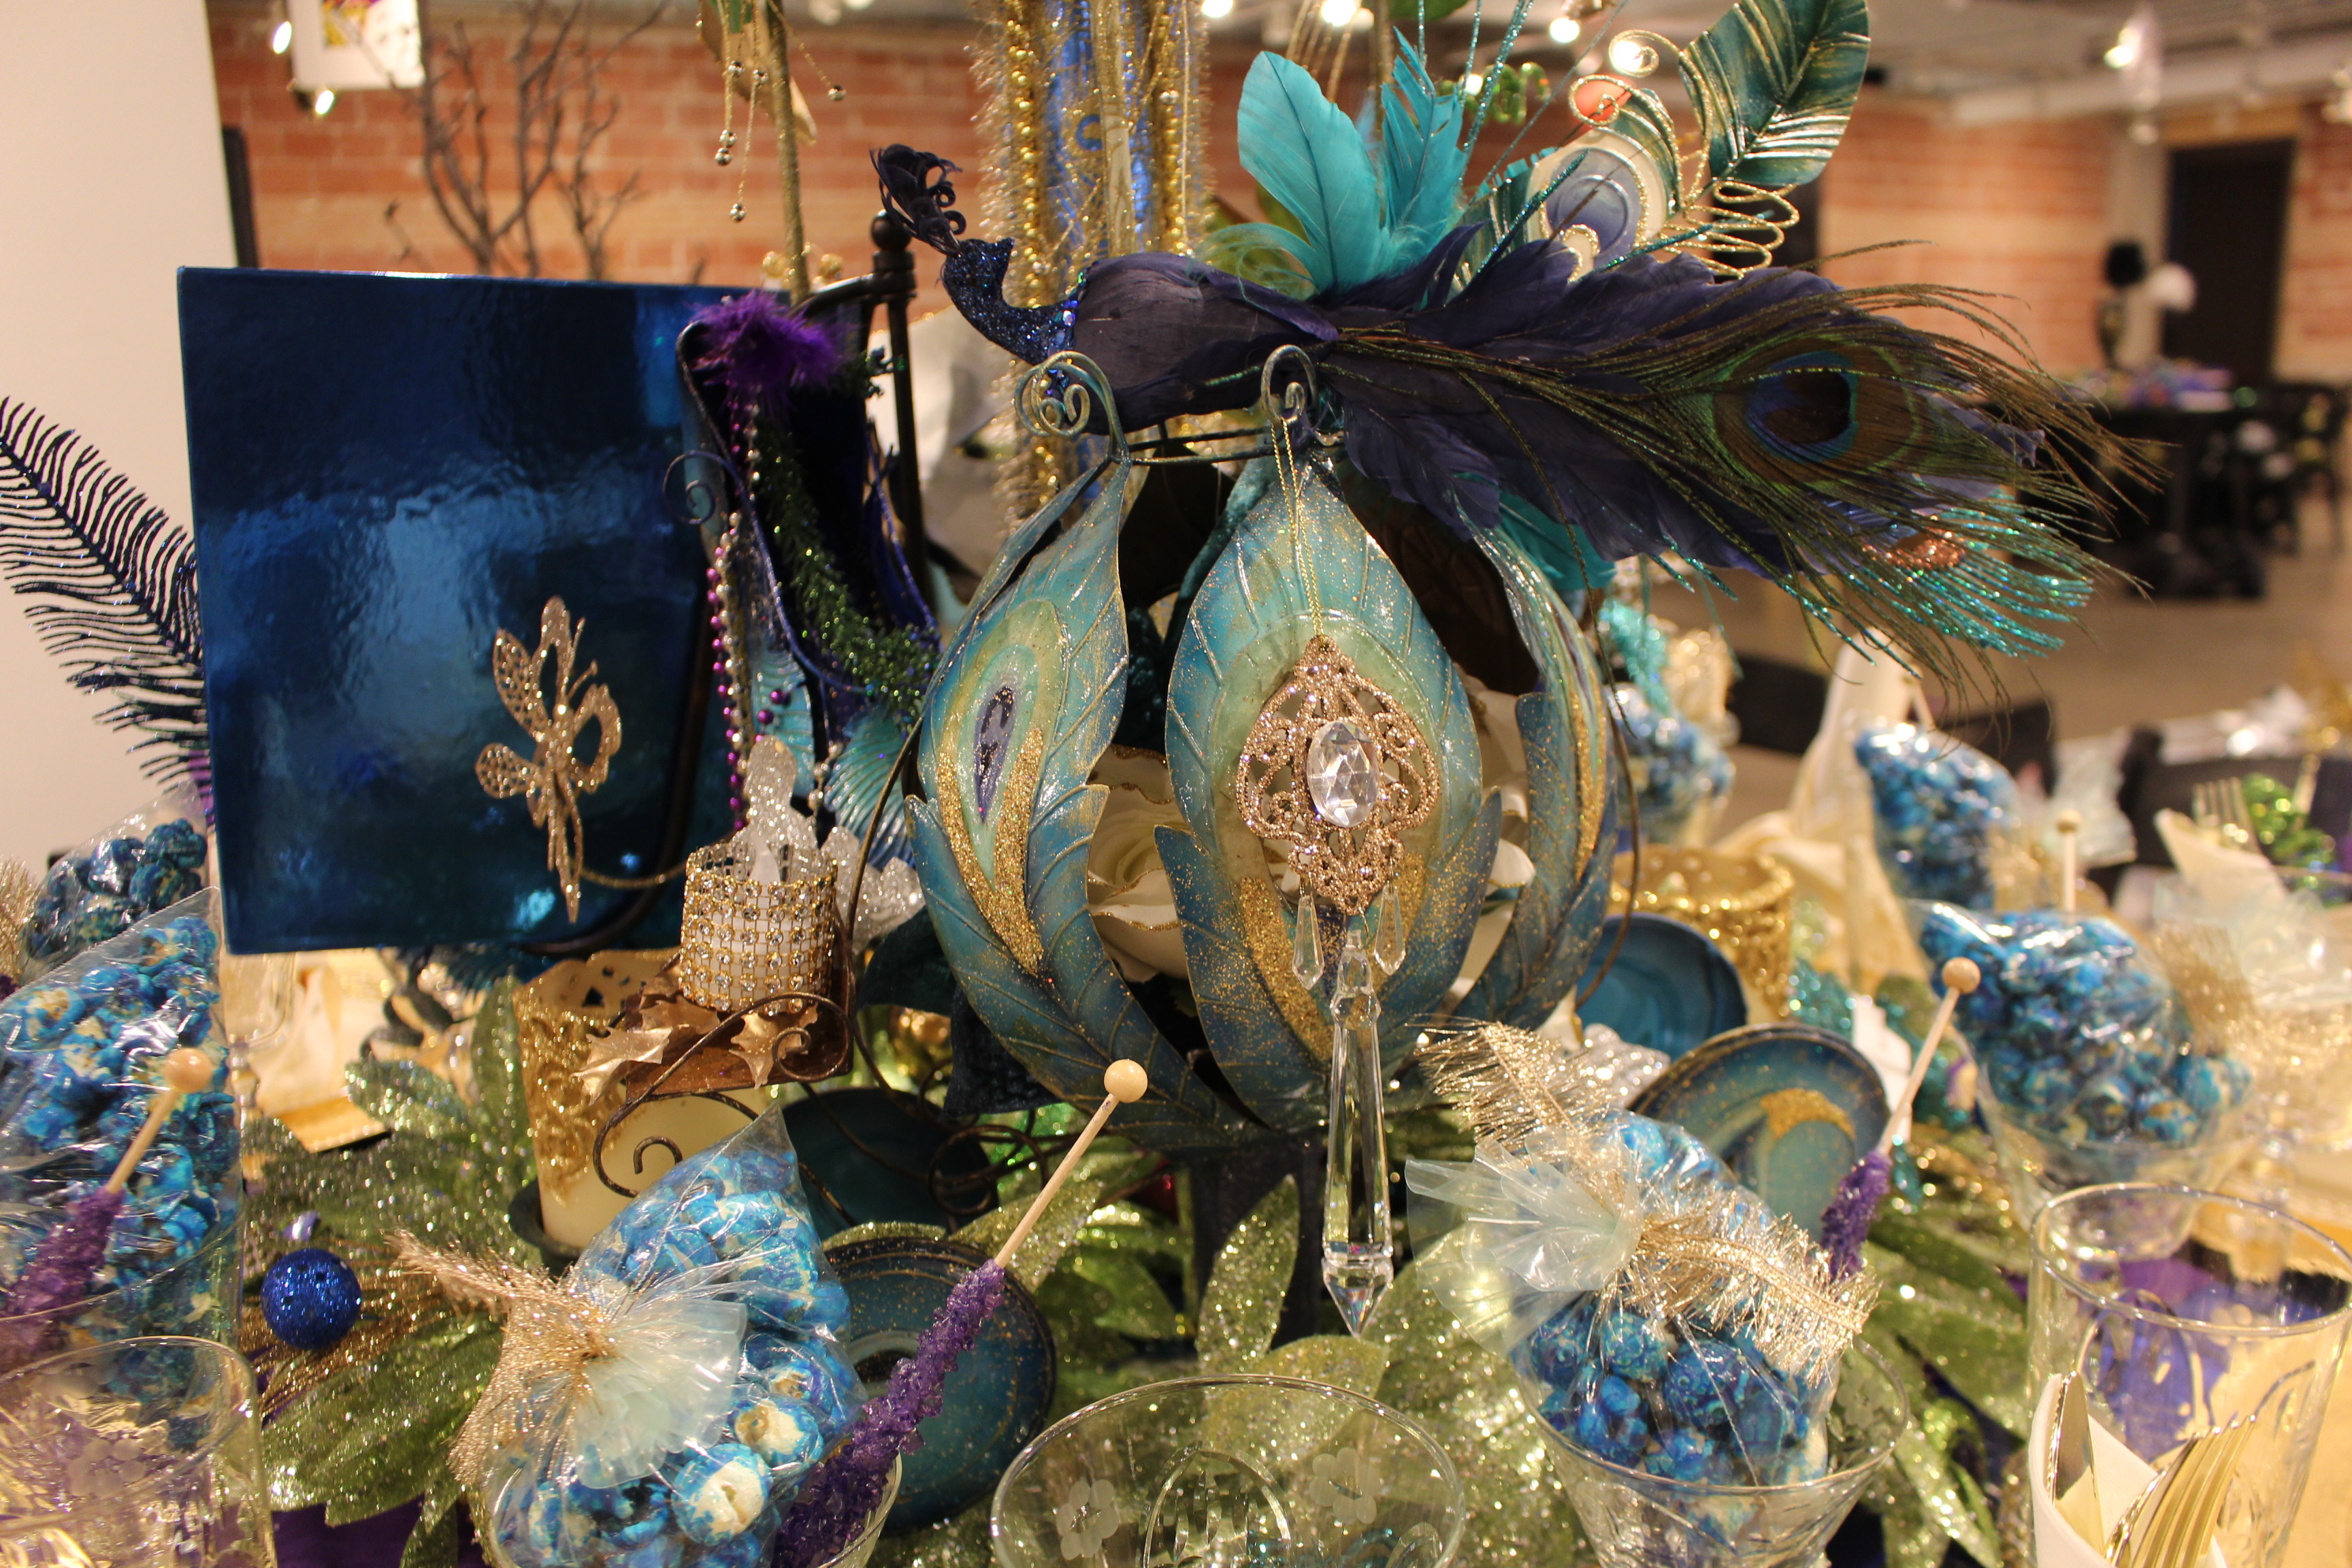 Fairy Tale Centerpiece and Table Setting FOR SALE | Wedding, Birthday, Mardi Gras Decorations